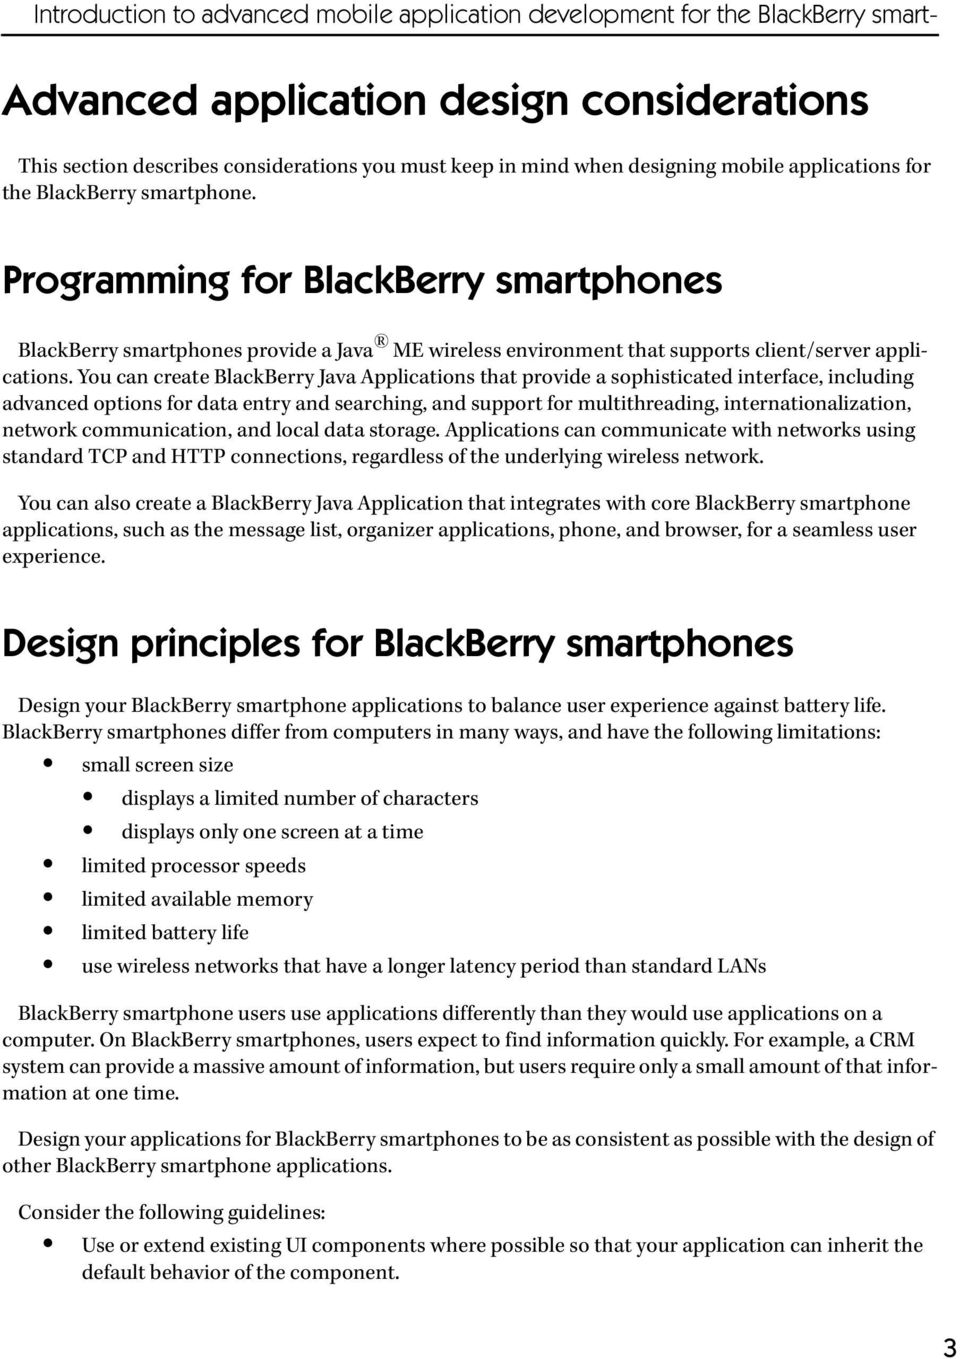 Advanced Java Application Development for the BlackBerry Smartphone